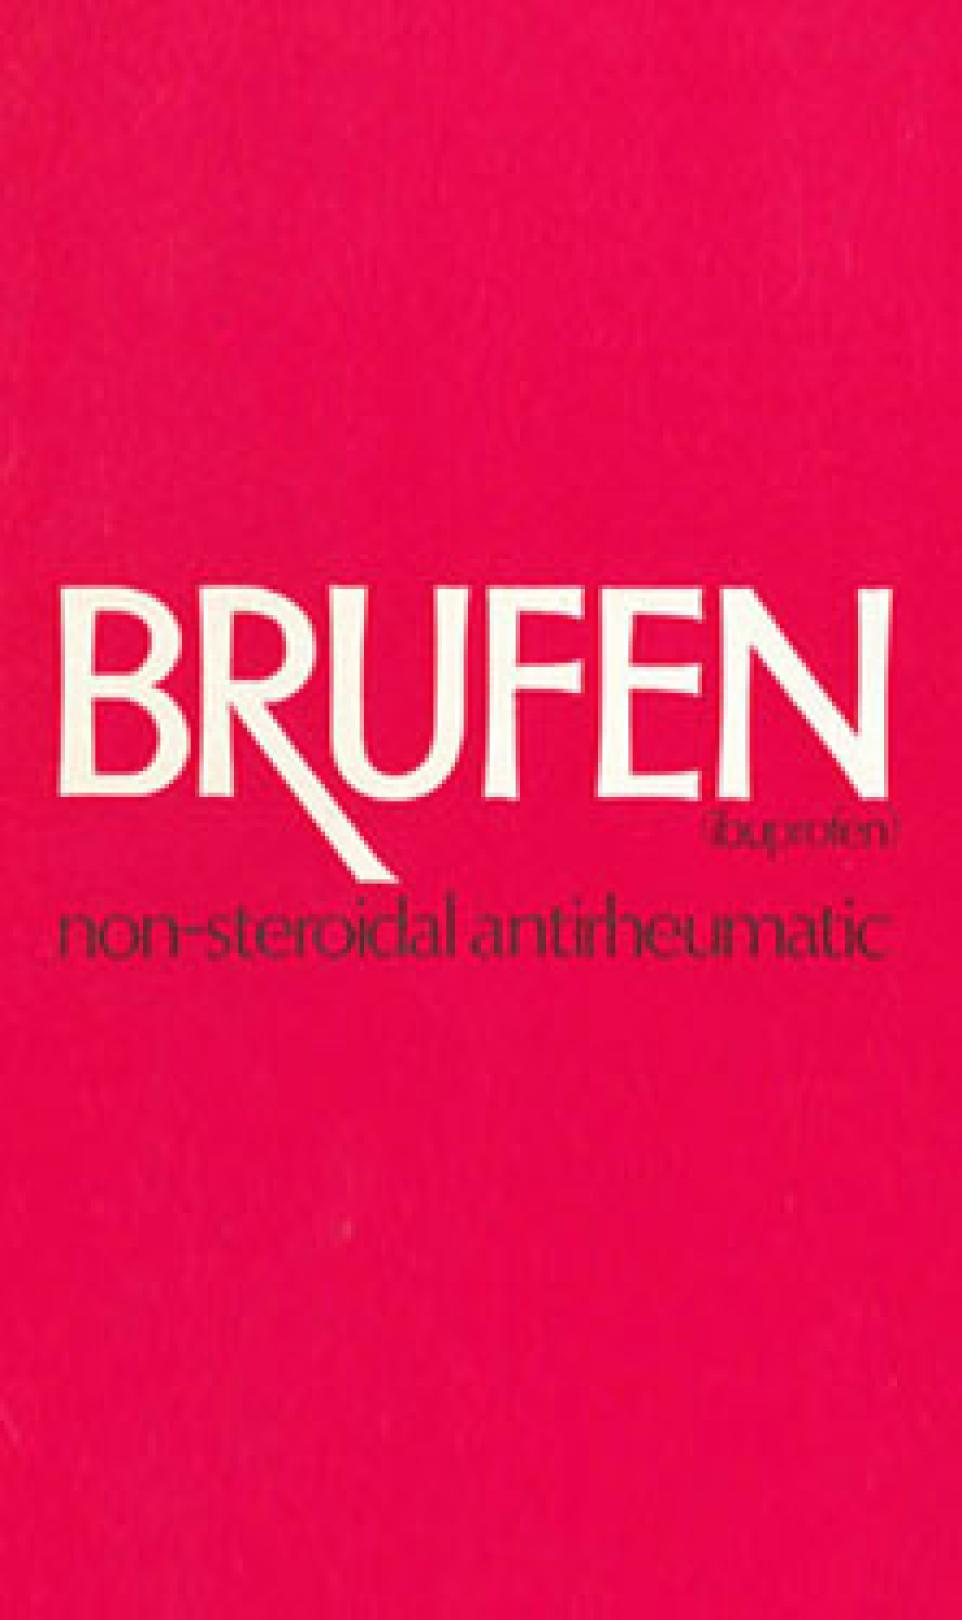 Picture of the red and white Ibuprofen (Brufen) packaging when it first launched in the UK